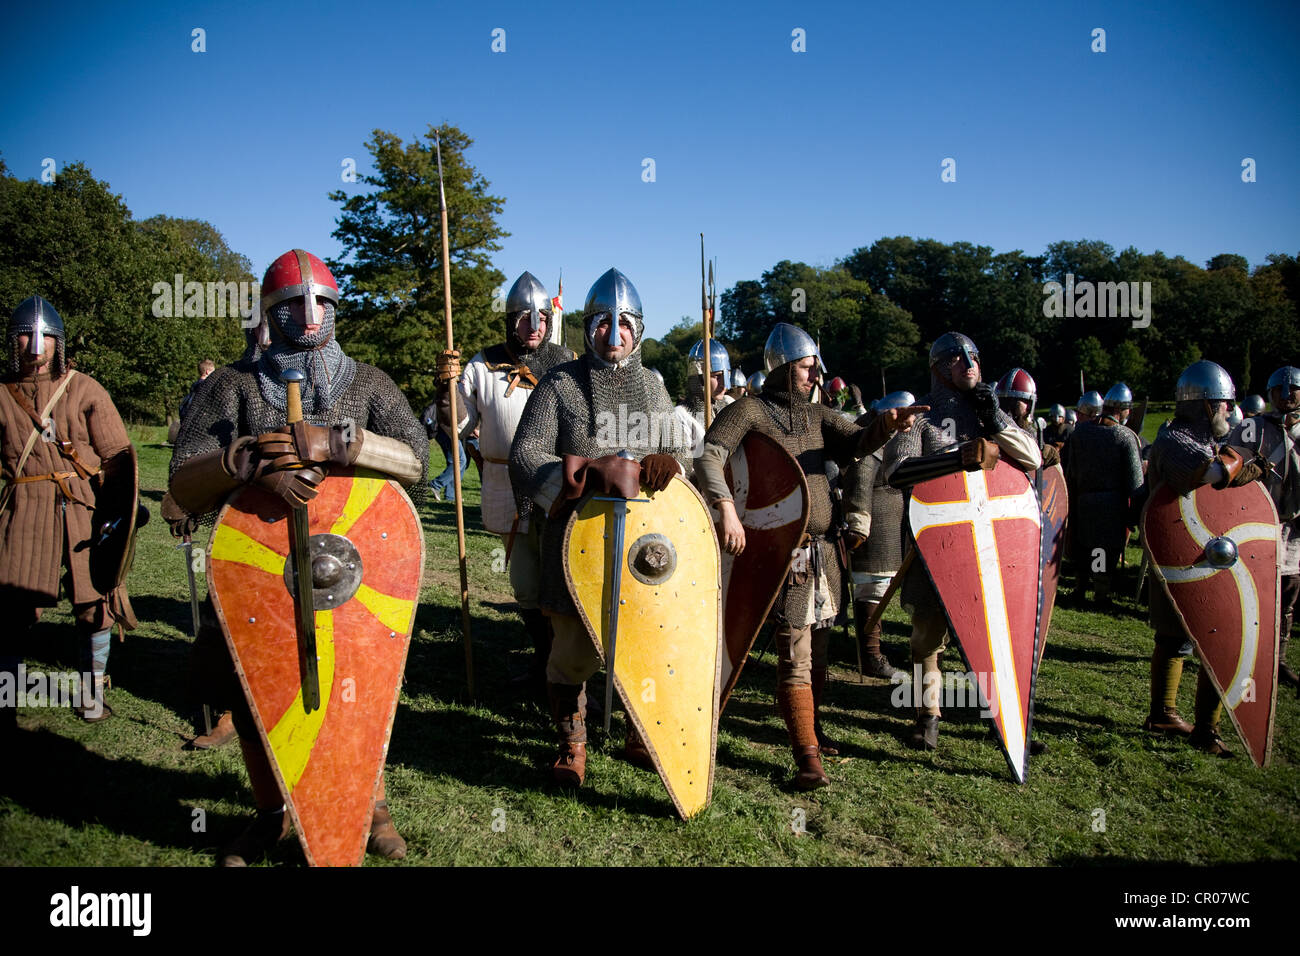 UK. England. Reenactment of 1066 Battle of Hastings. East Sussex. Men in chainmail with shields. - Stock Image